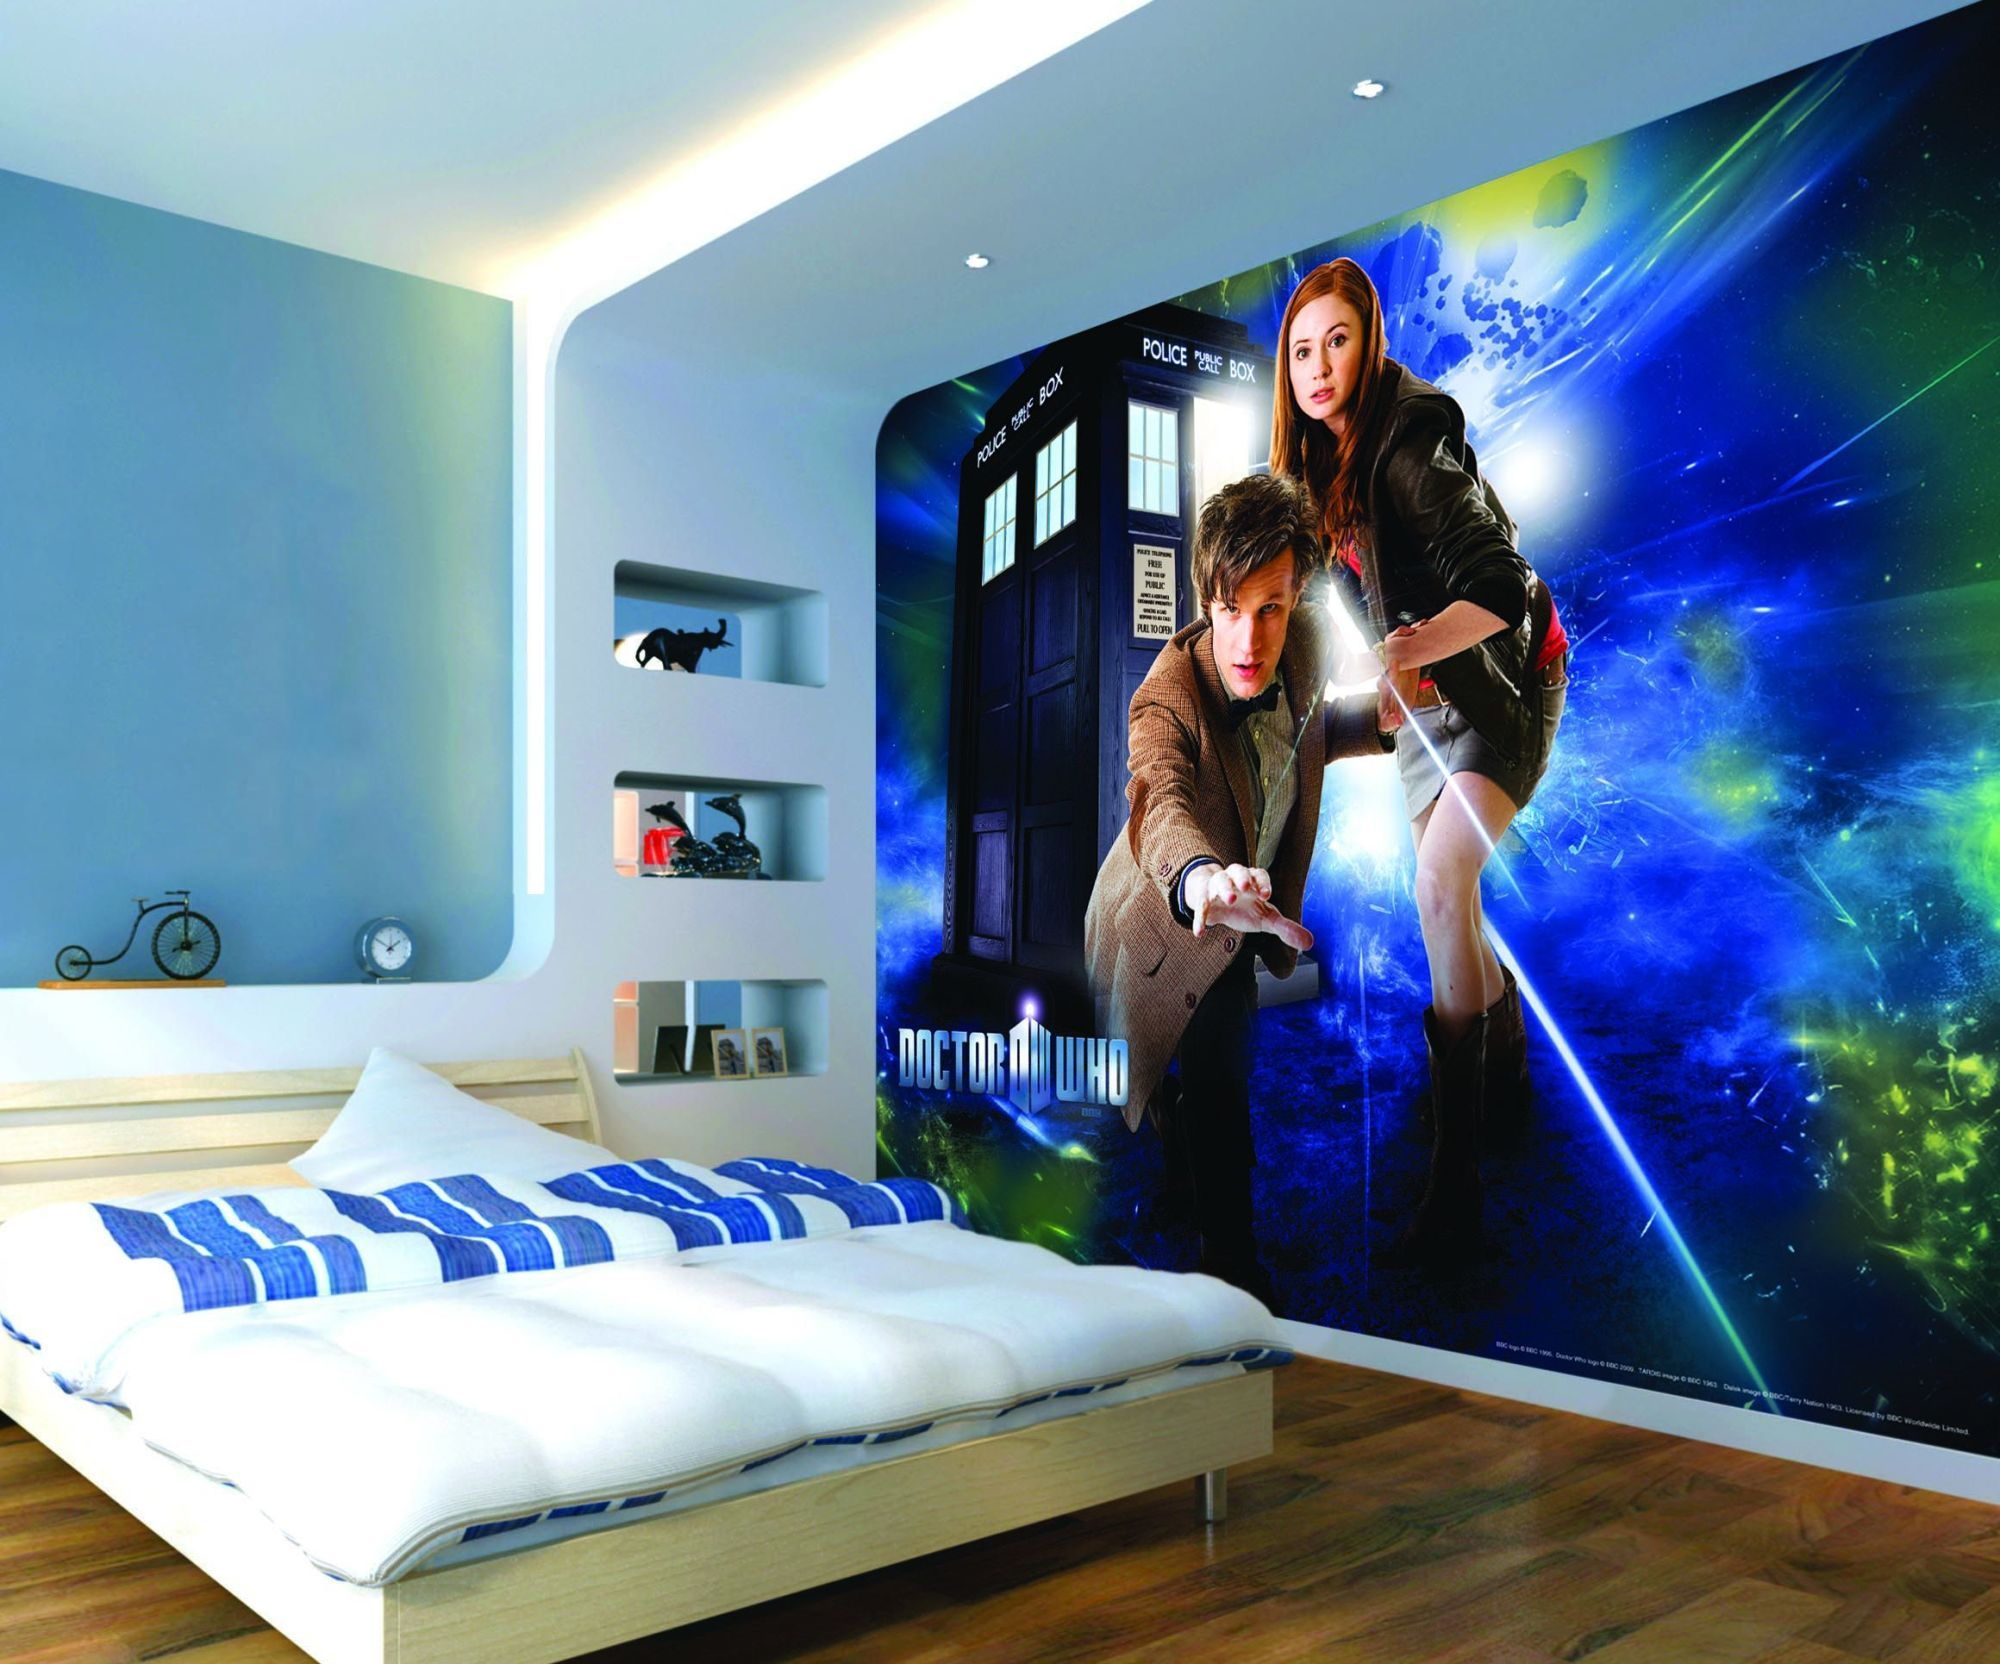 Main image Doctor who wallpaper, Doctor who room